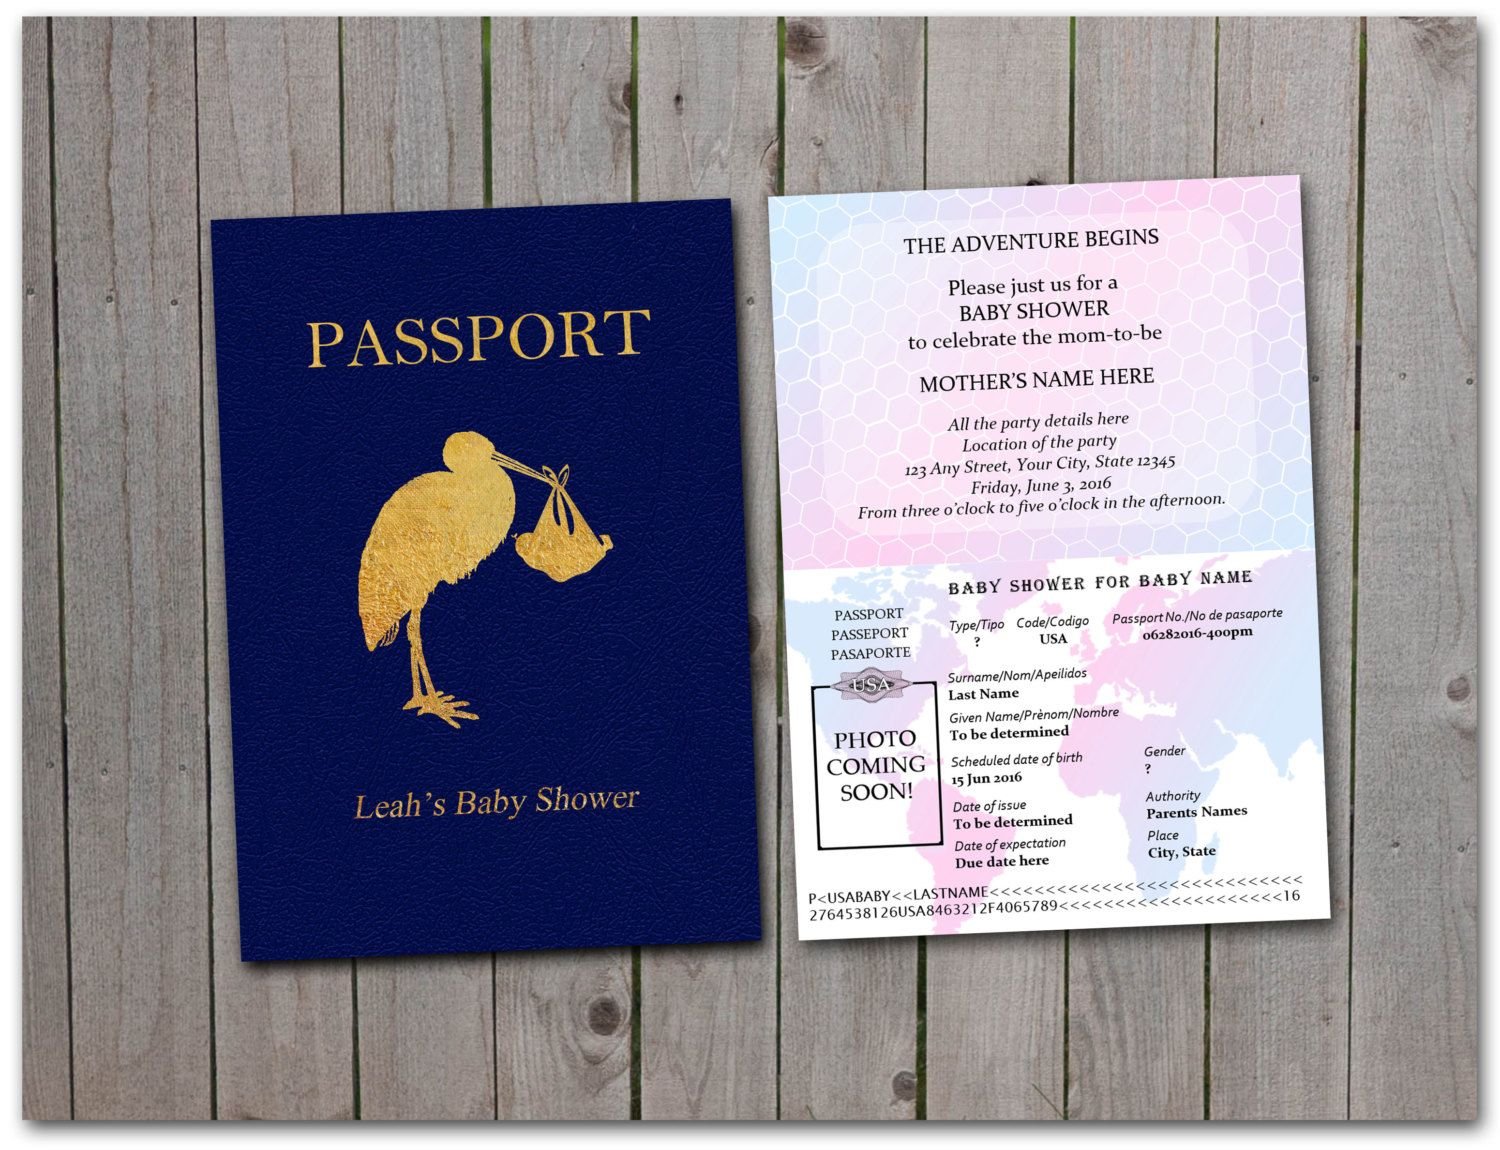 Related image travel baby shower in 2018 pinterest passport baby shower invitations related image filmwisefo